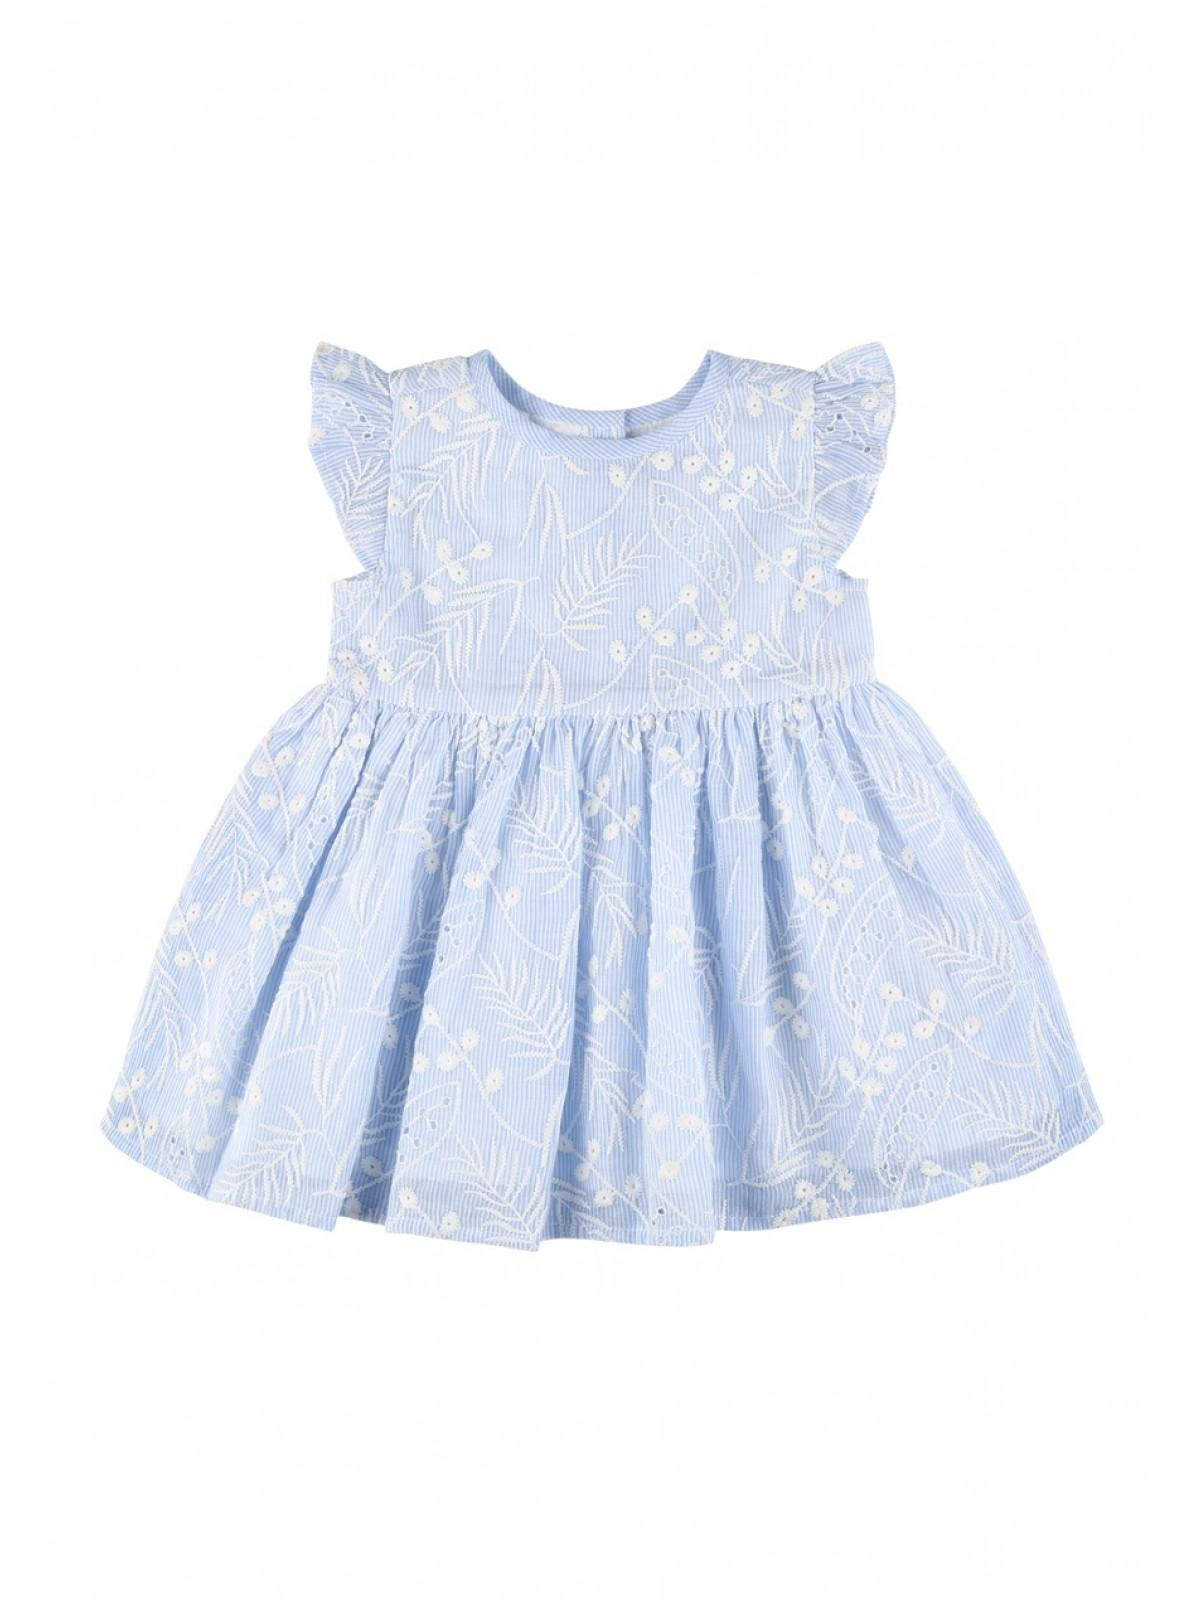 Baby Girls Light Blue Embroidered Dress